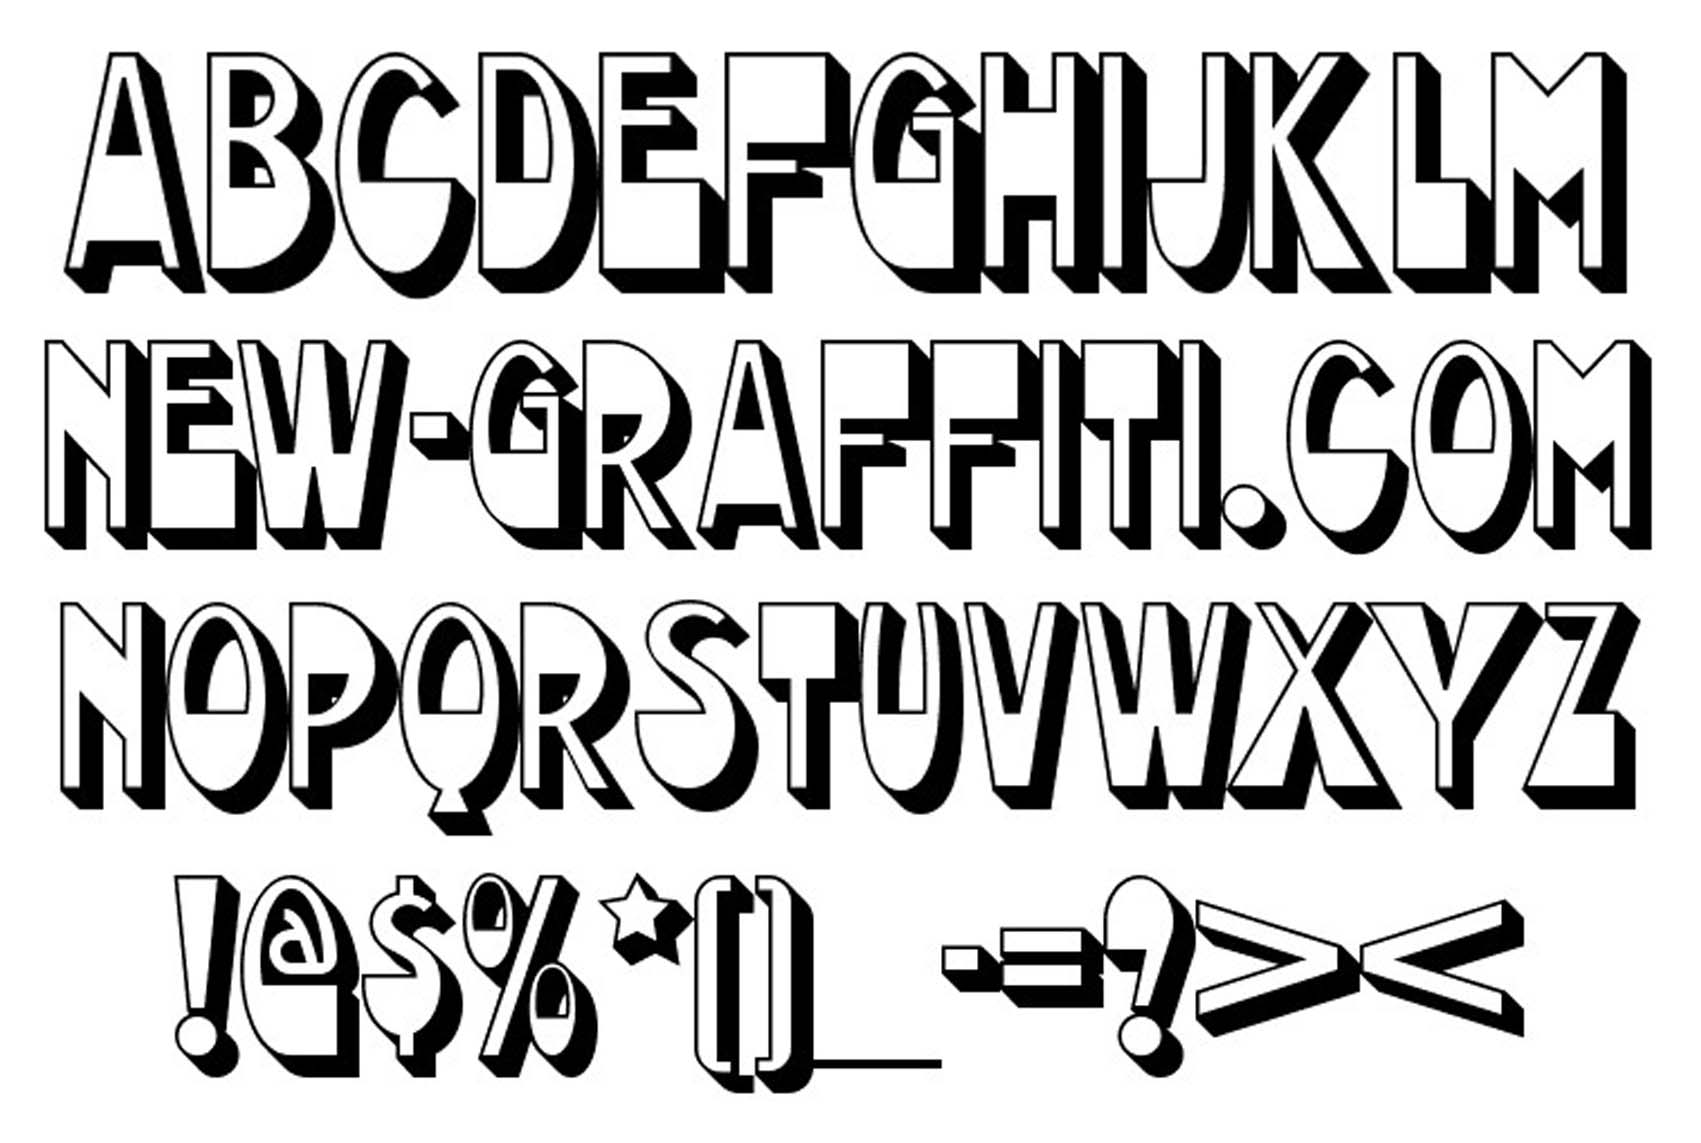 Graffiti Letter Styles - All About Design Letter